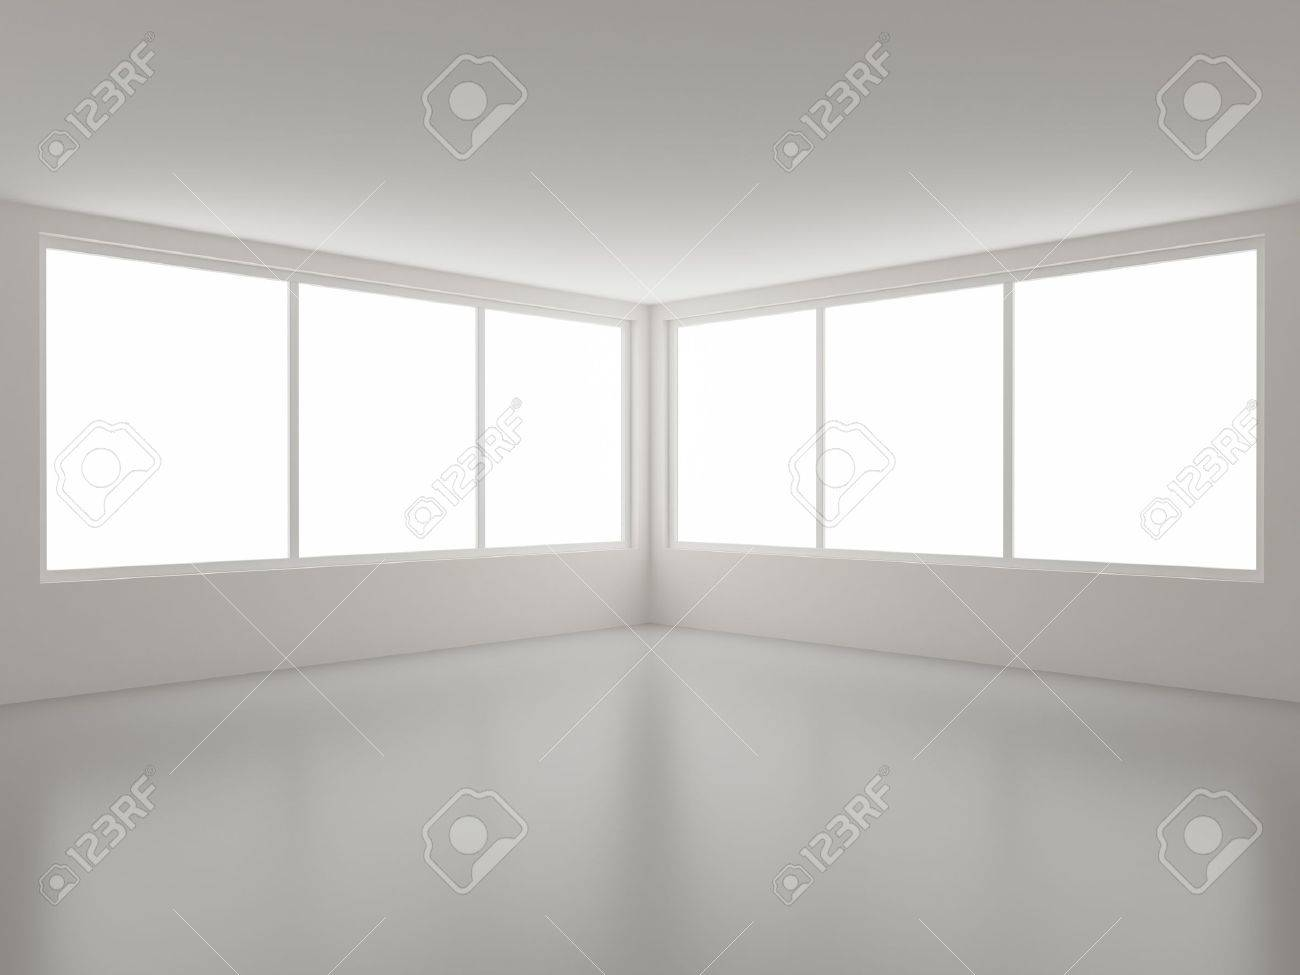 New clean interior, corner and windows, clipping path for windows included Stock Photo - 8446556